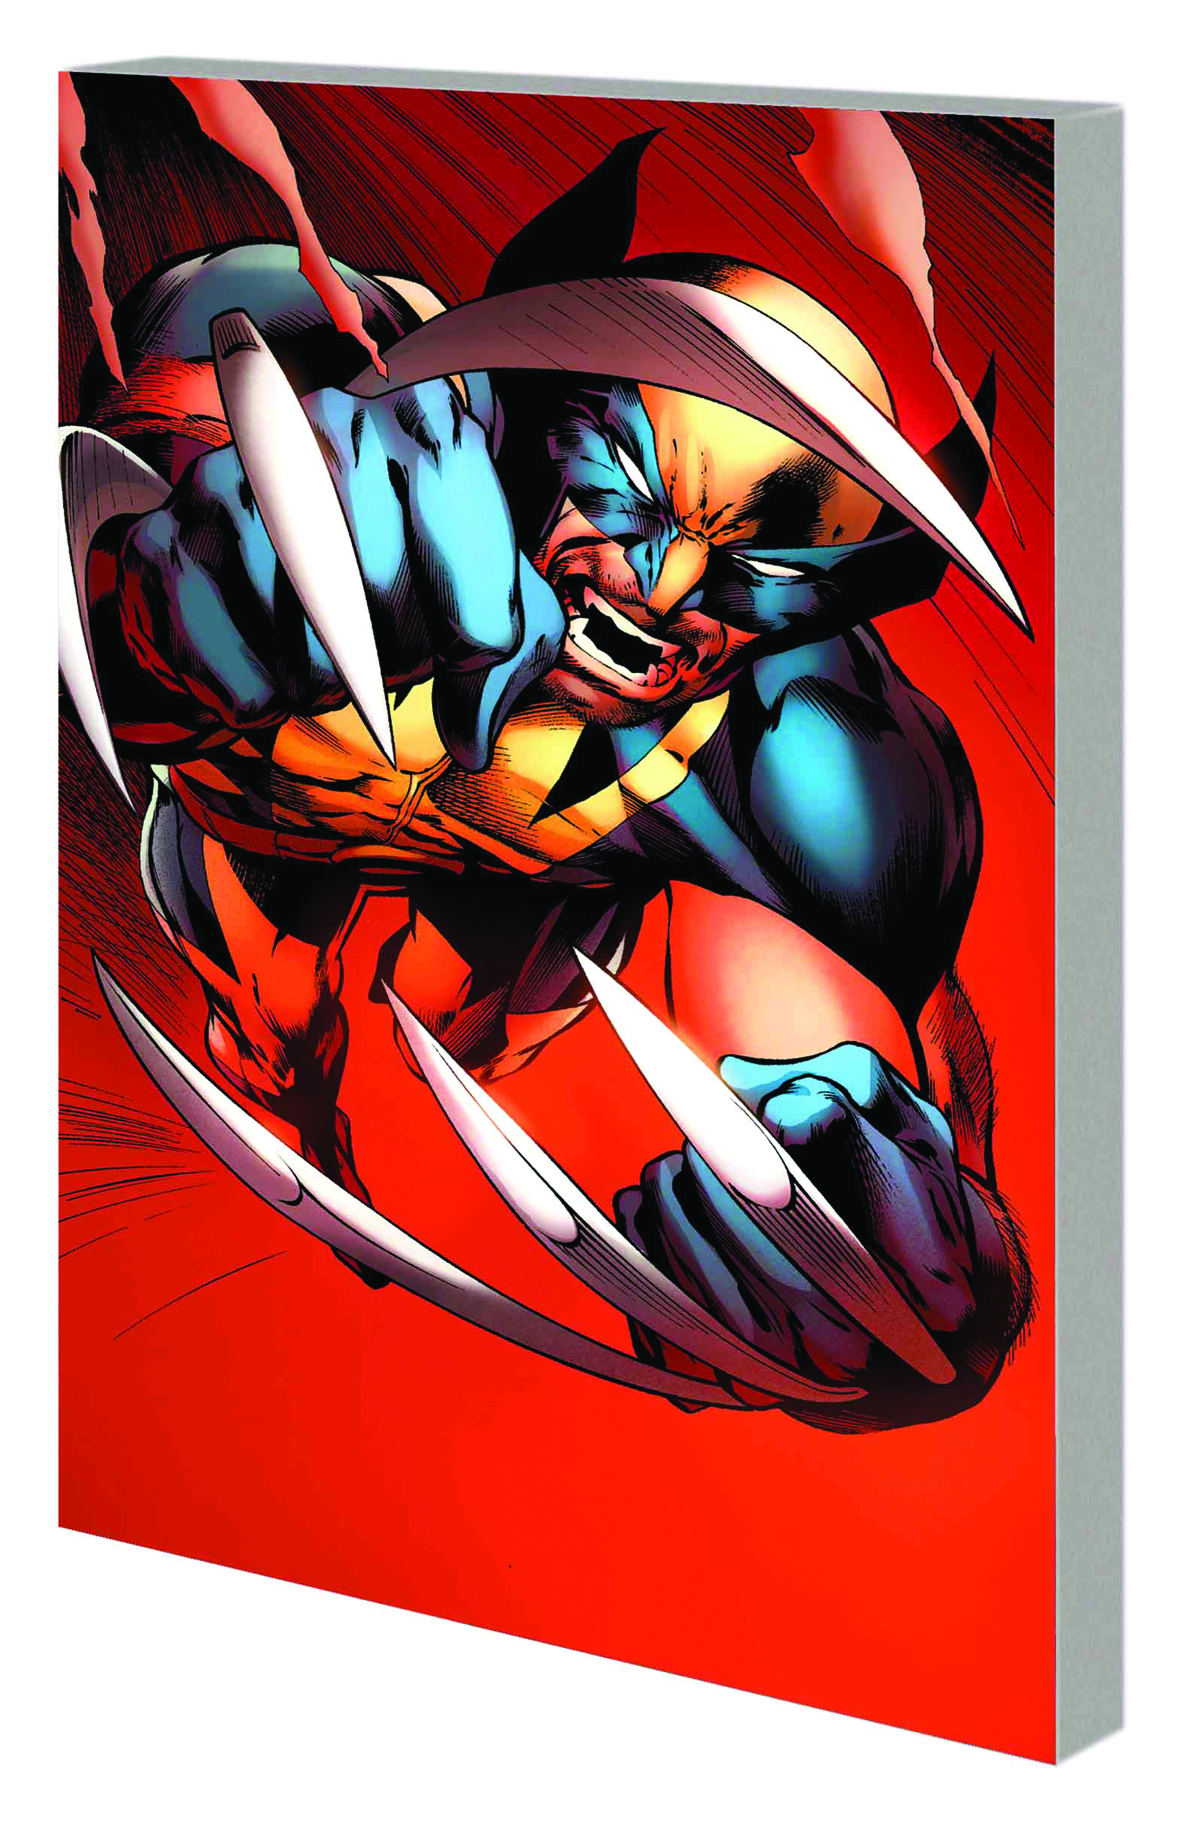 WOLVERINE TP VOL 01 HUNTING SEASON NOW